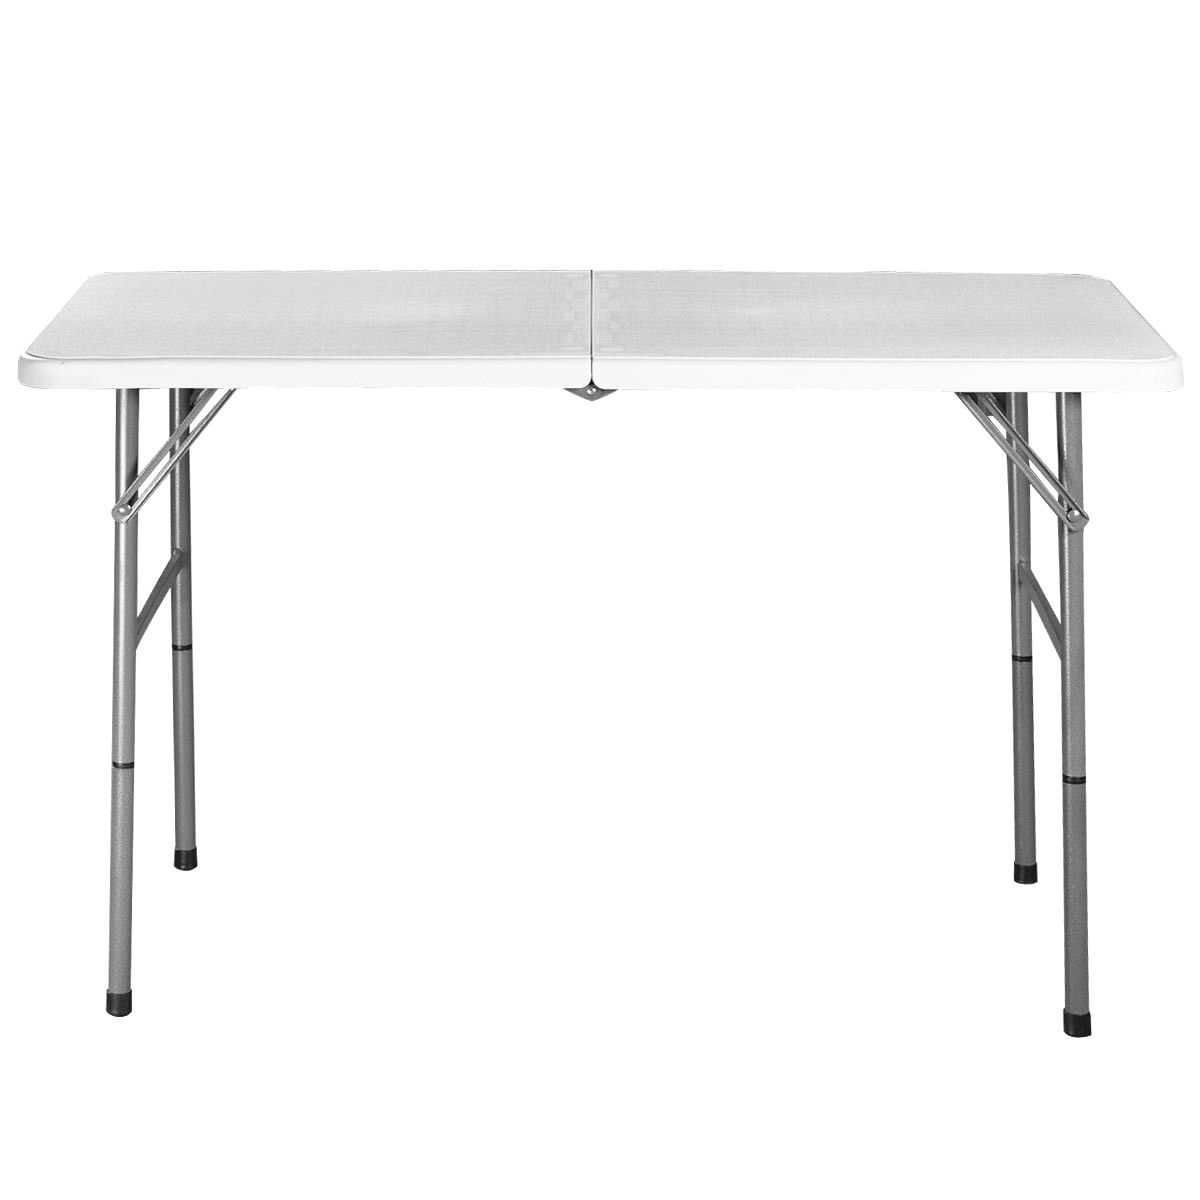 4' Folding Portable Plastic Outdoor Camp Table